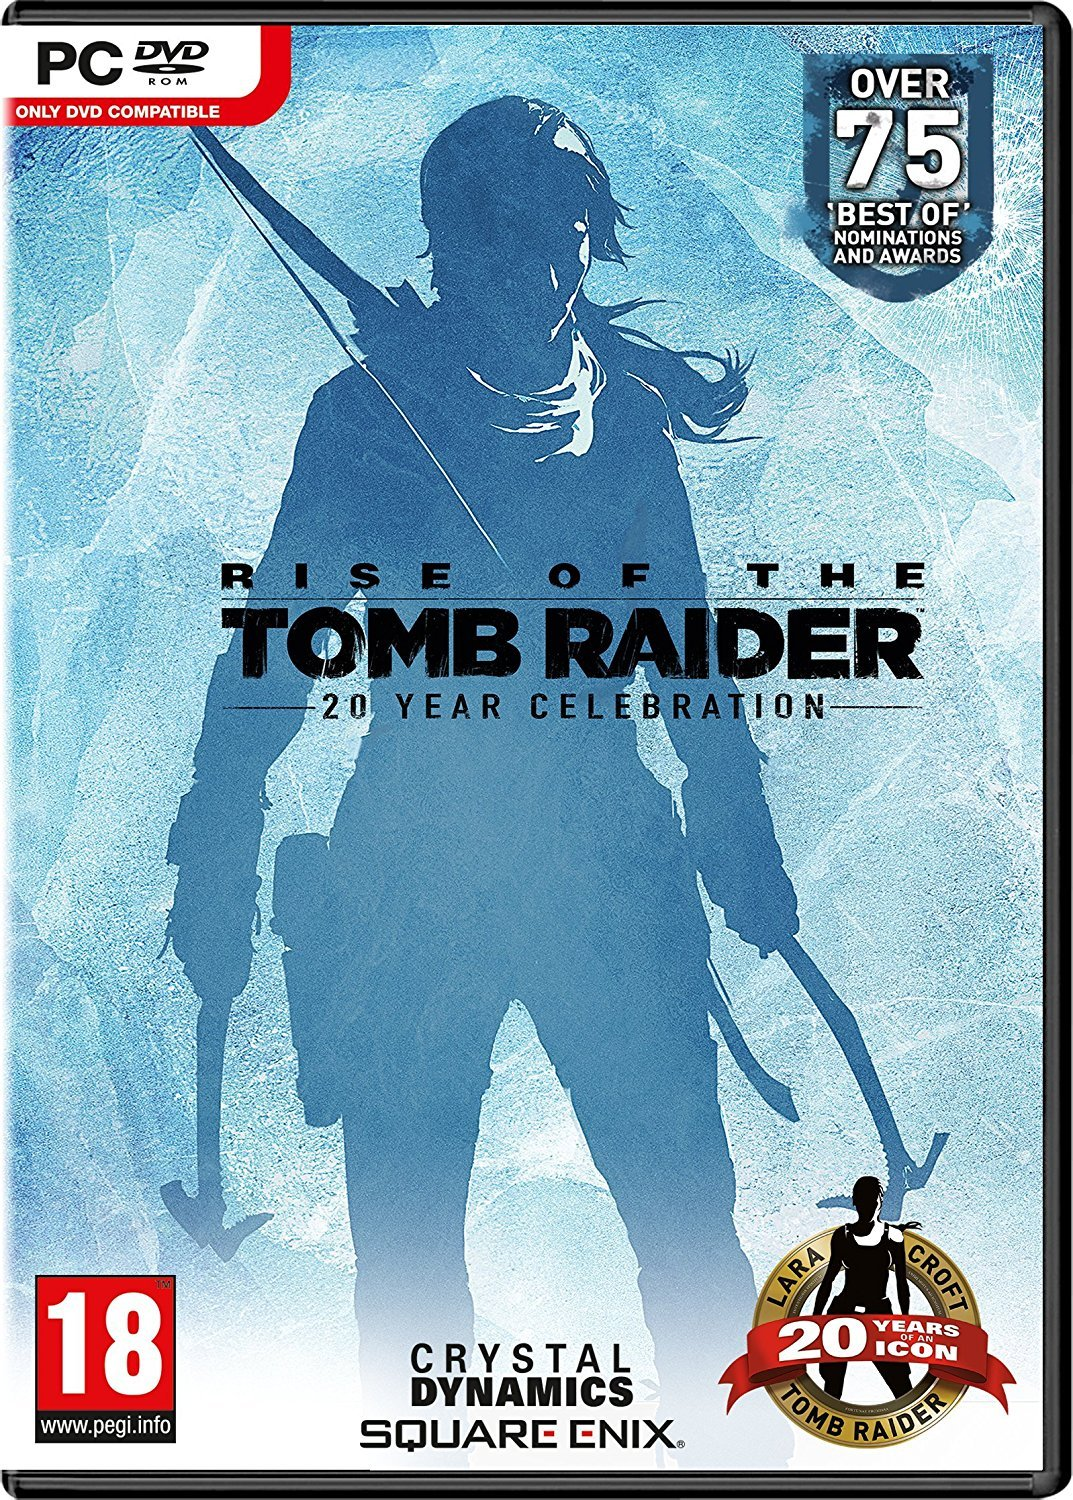 tomb raider 20 year celebration map